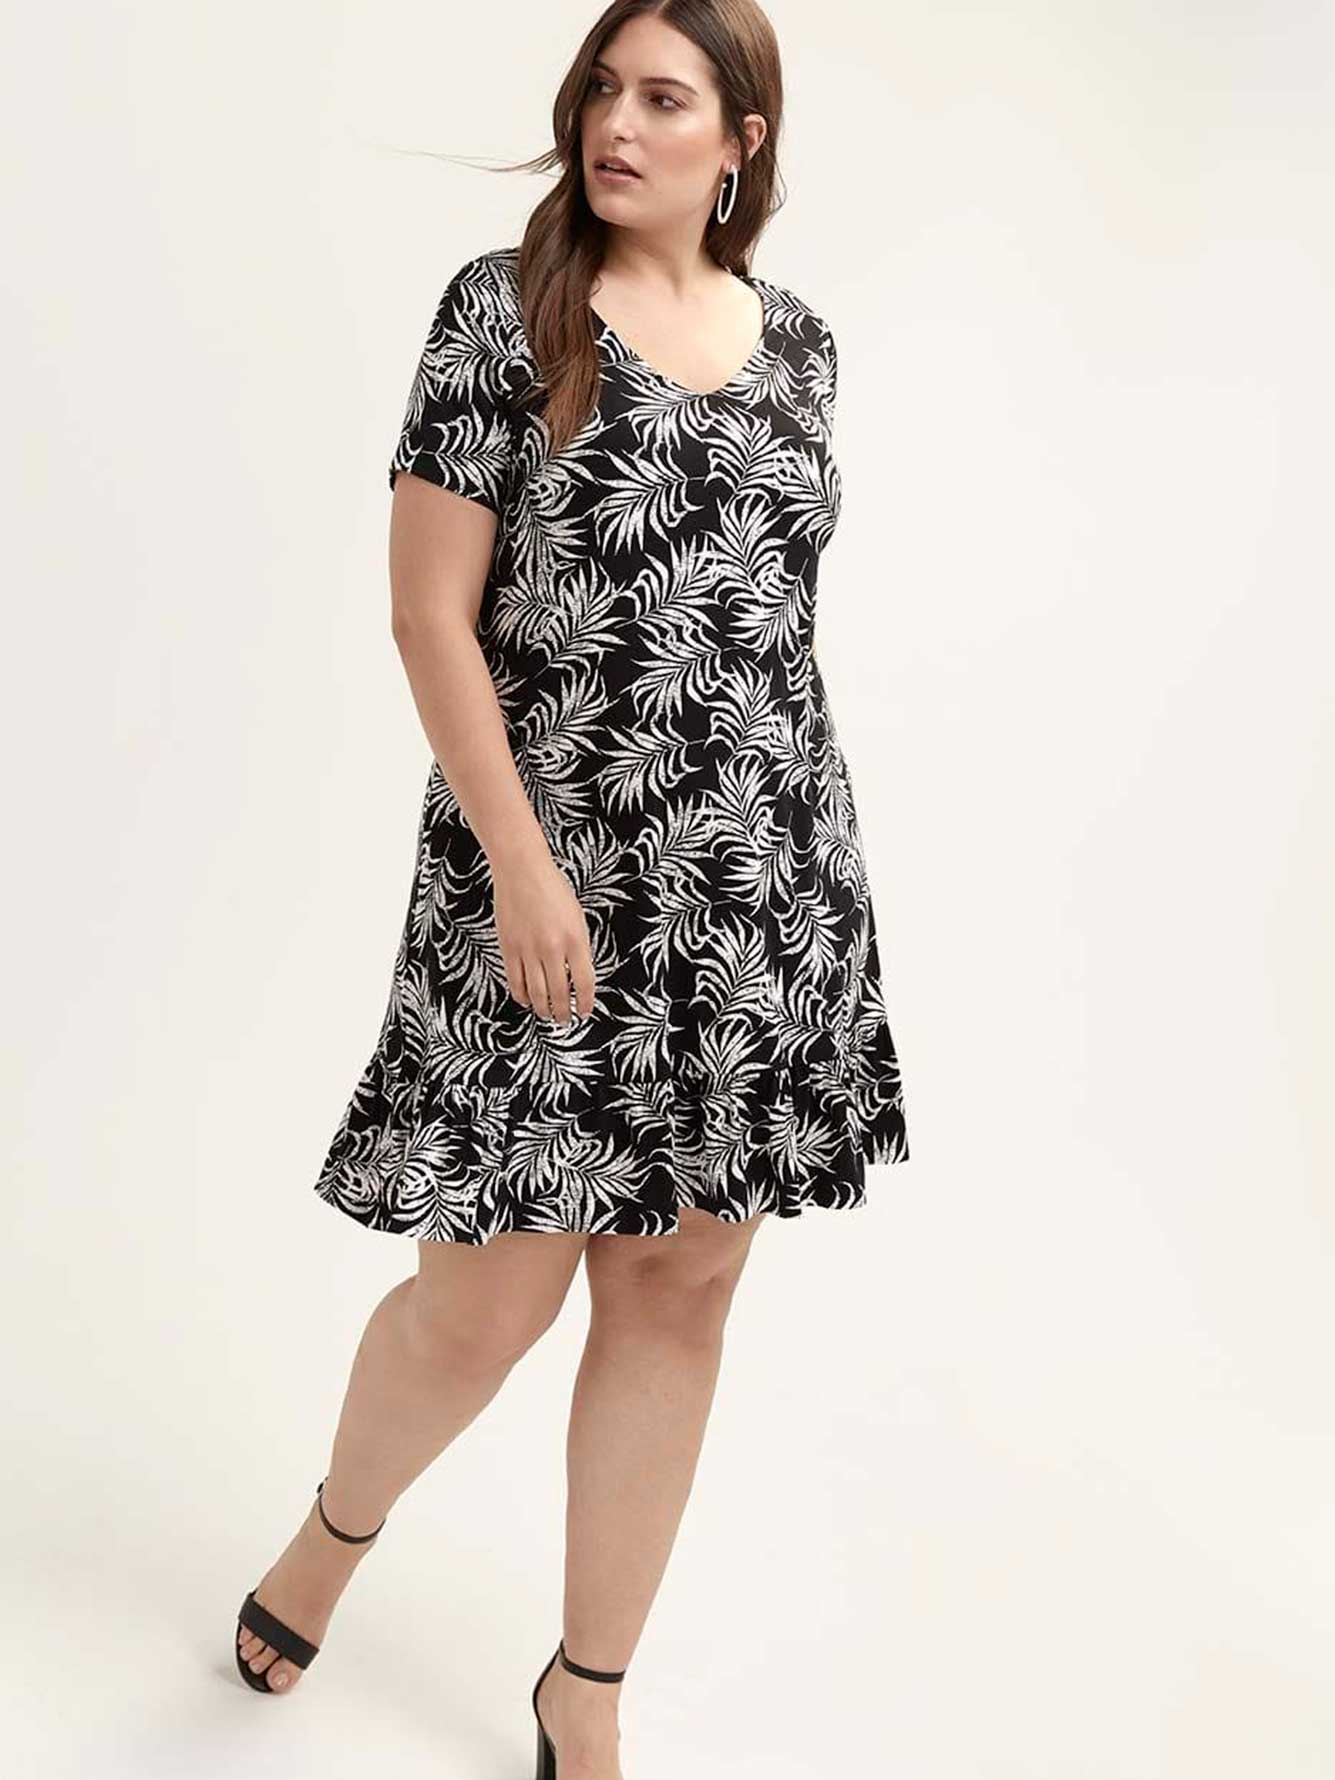 Printed Swing Dress with Bottom Flounce - In Every Story